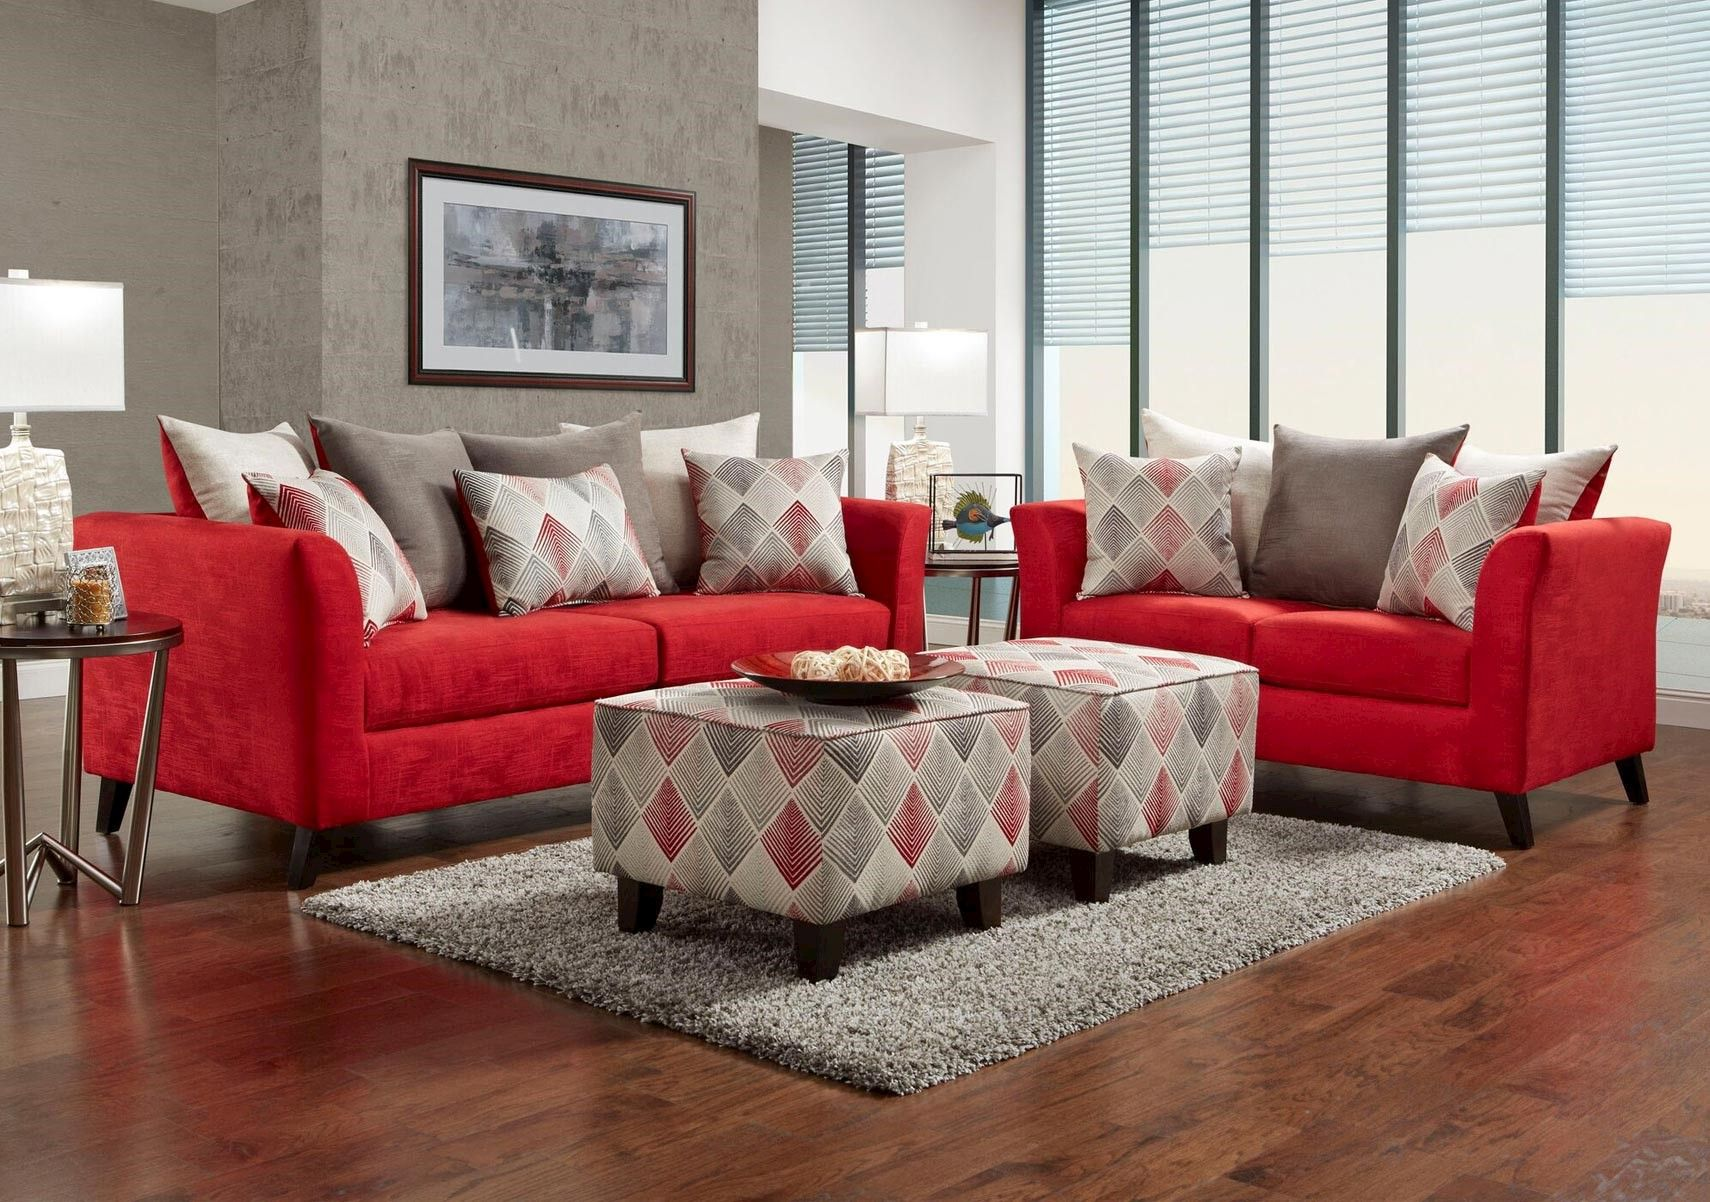 Lacks Stix 2 Pc Red Living Room Set Red Couch Living Room Living Room Red Red Sofa Living Room